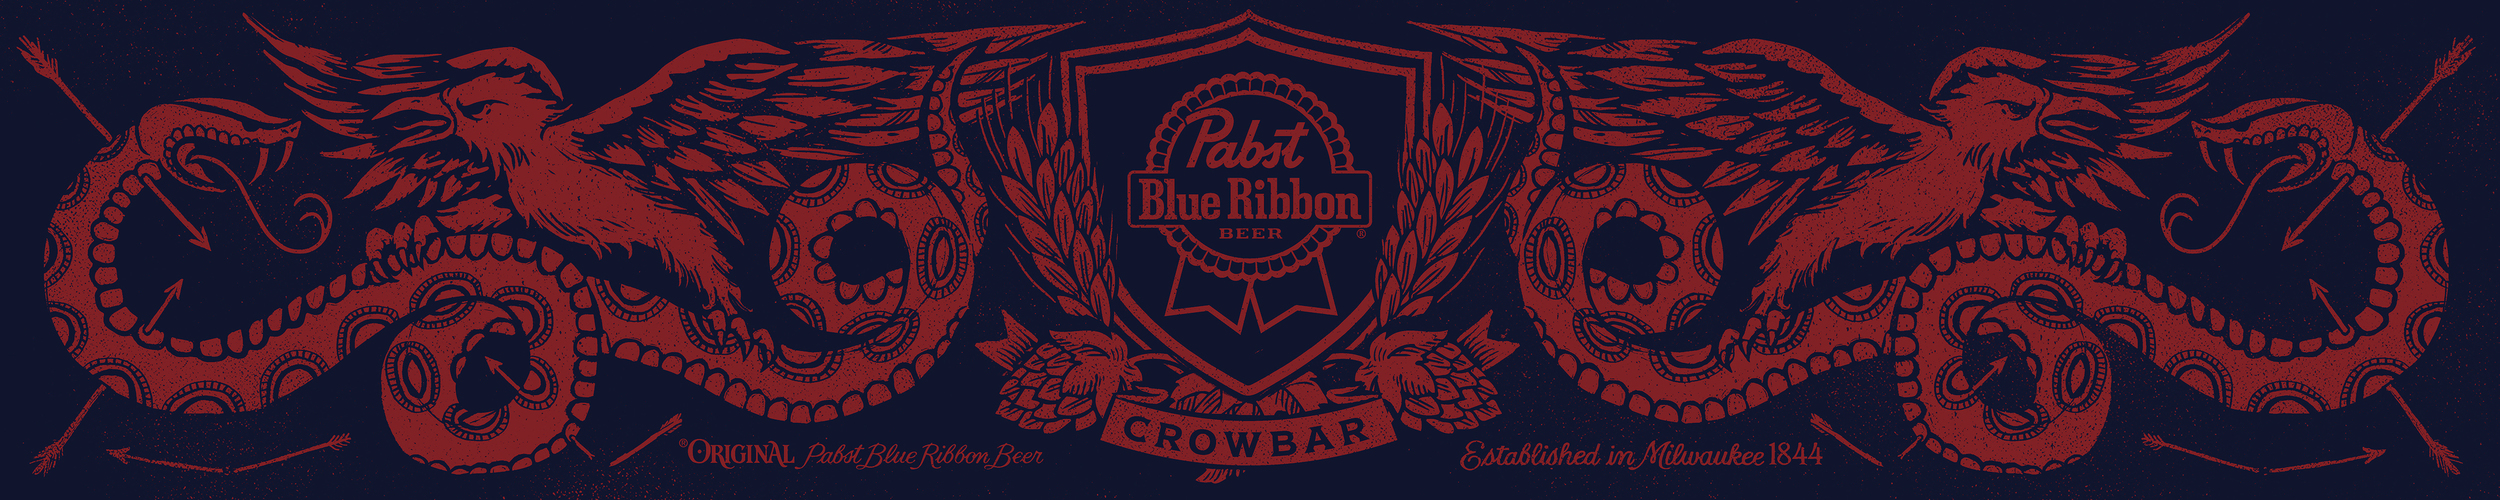 Pabst Blue Ribbon - Banner